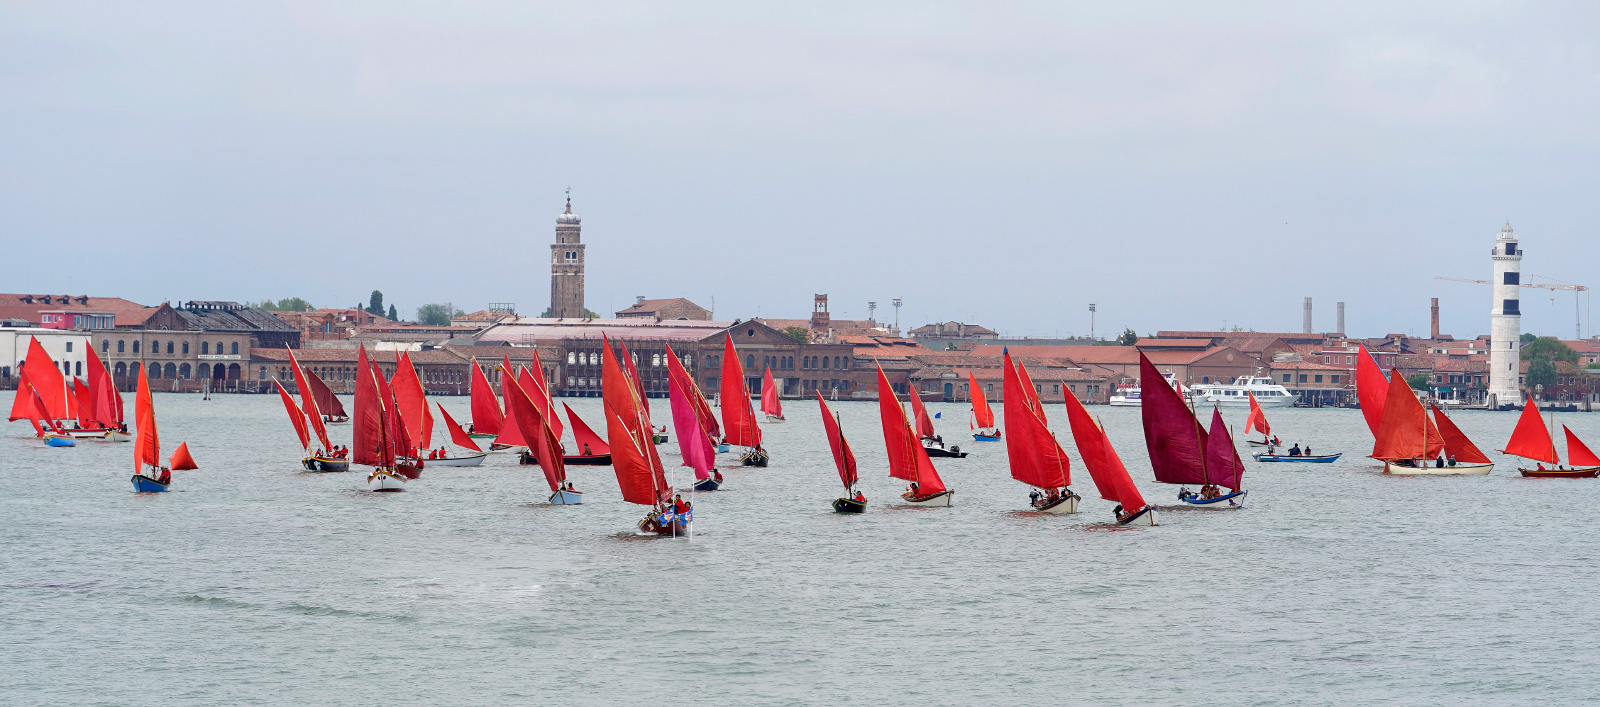 A fleet of red sailboats on a canal